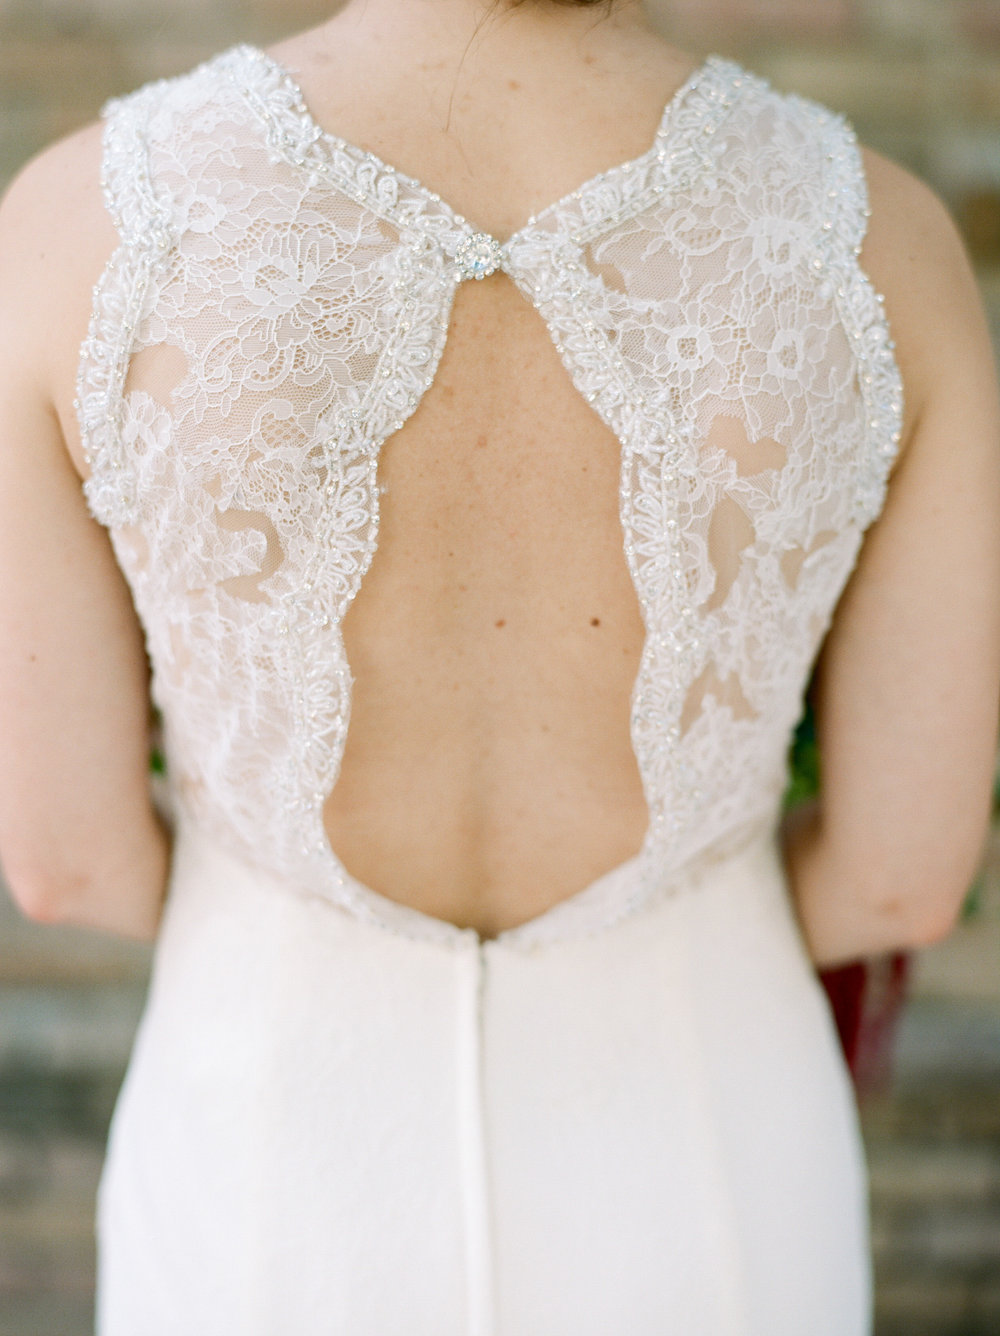 The-Knot-Texas-Fine-Art-Wedding-Film-Destination-Photographer-Houston-Austin-Dallas-New-Orleans-Julia-Ideson-Library-Event-Dana-Josh-Fernandez-Photograph-Top-Best-17.jpg